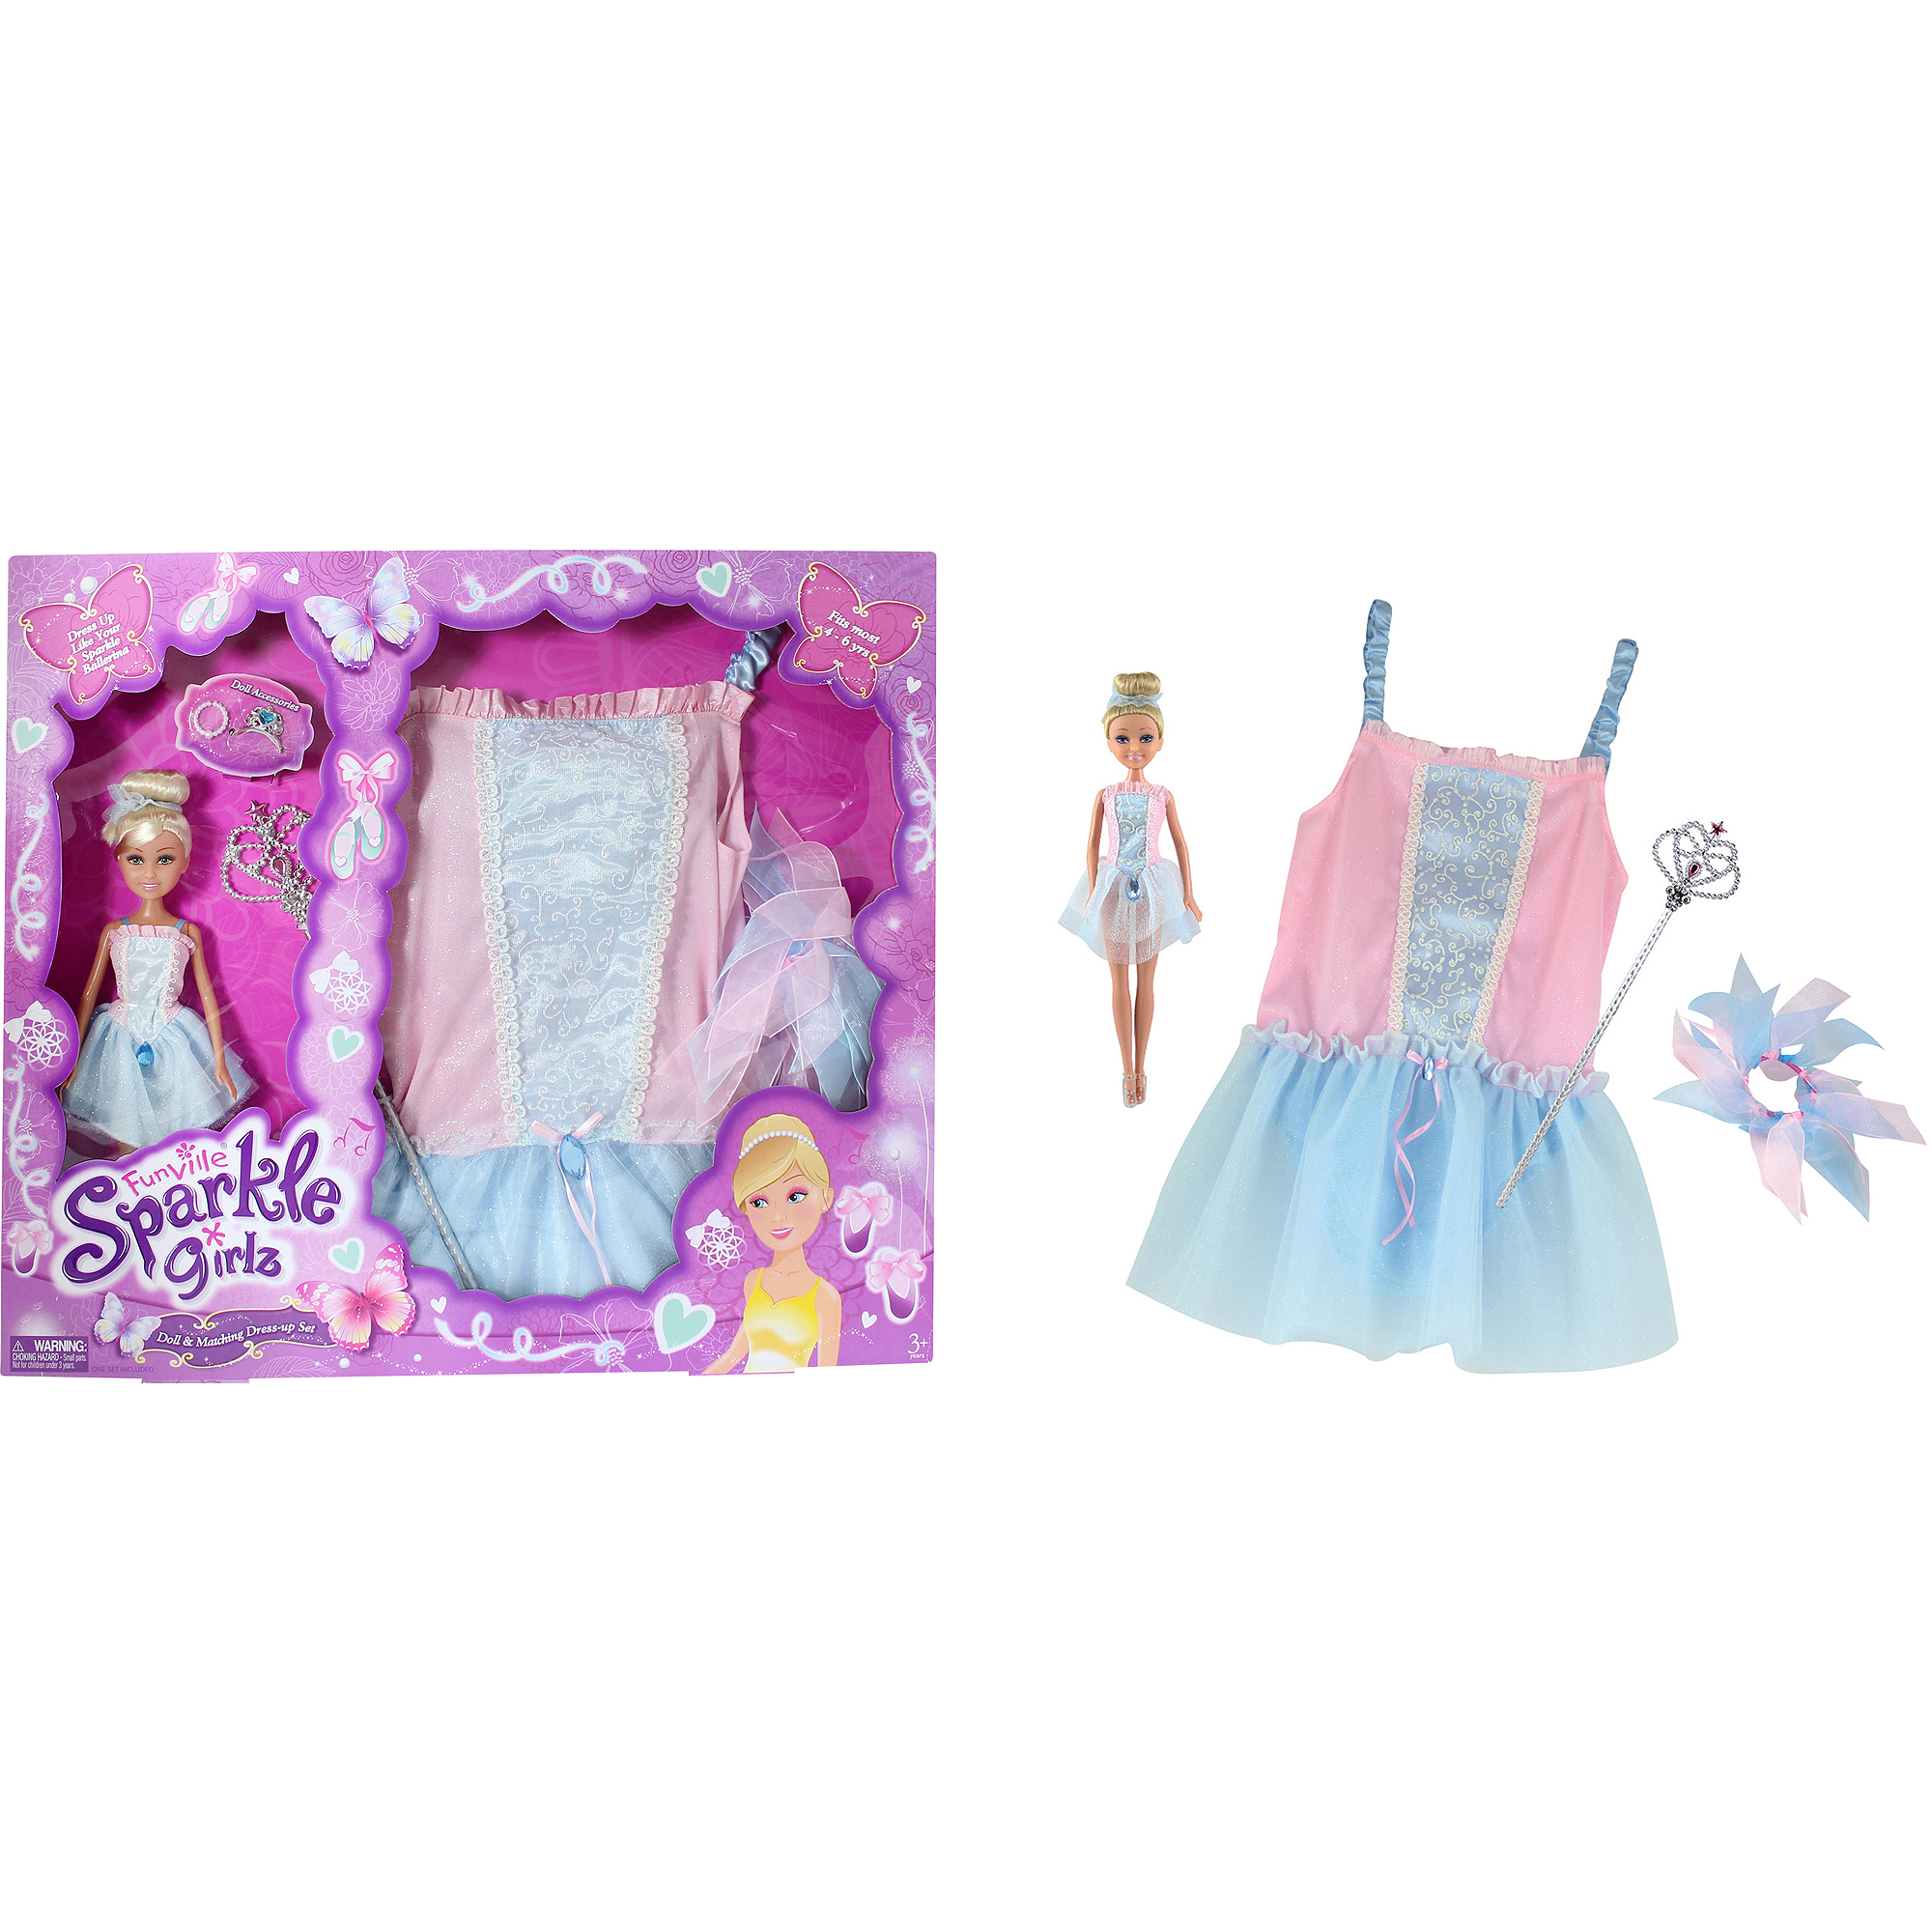 Funville Sparkle Girlz Doll with Dress Up, Caucasian, Ballerina by LIAN PING GREAT PERFORMANCE TOYS PRODUCT FACTORY